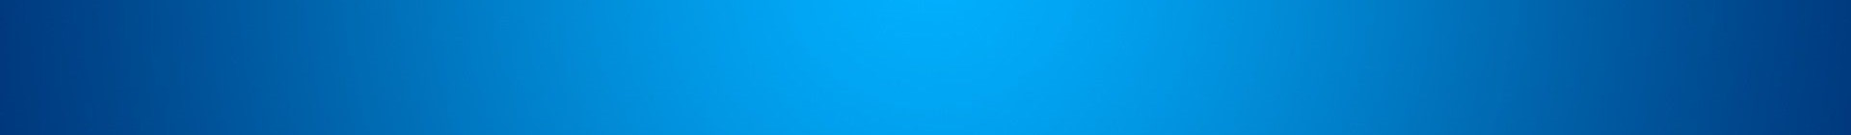 BPP Header Blue Gradient.png